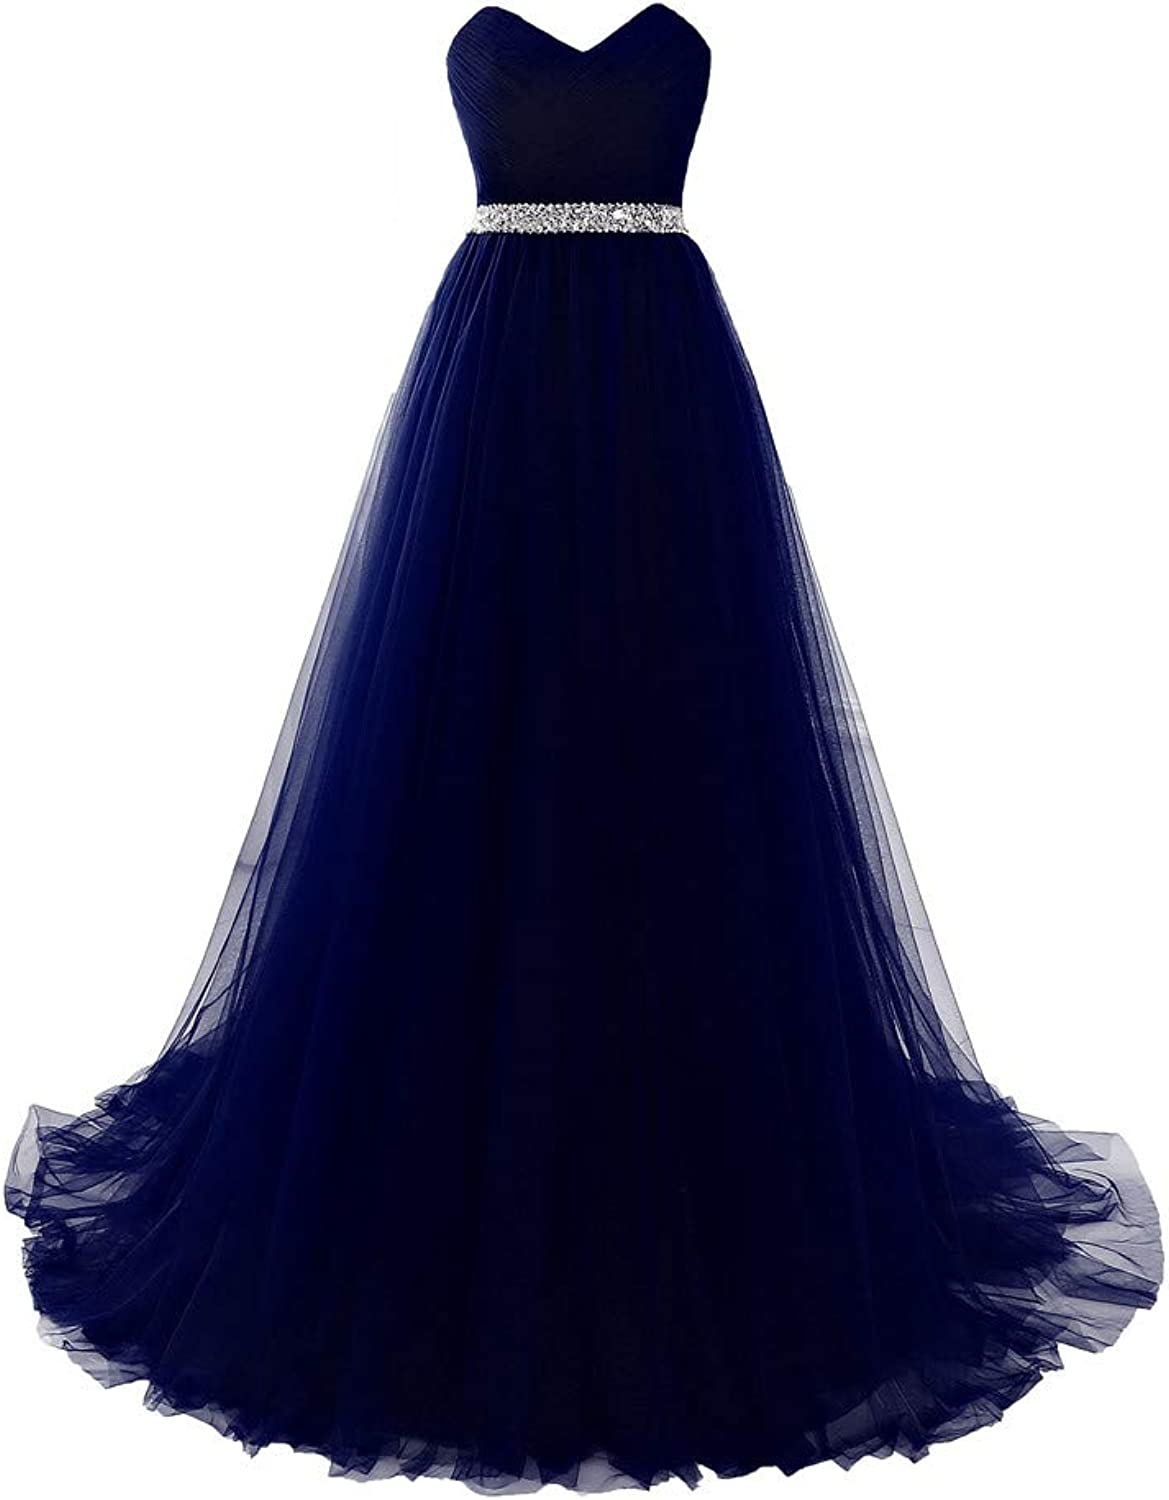 Datangep Sweetheart A Line Tulle Long Prom Evening Dresses Bridesmaid Party Gowns